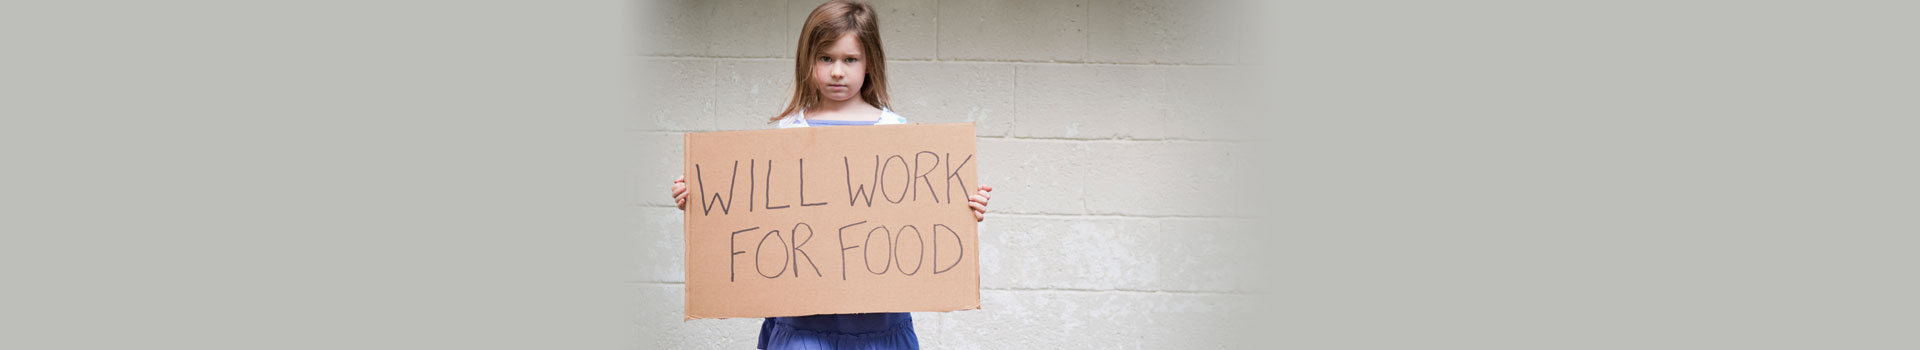 child-will-work-for-food